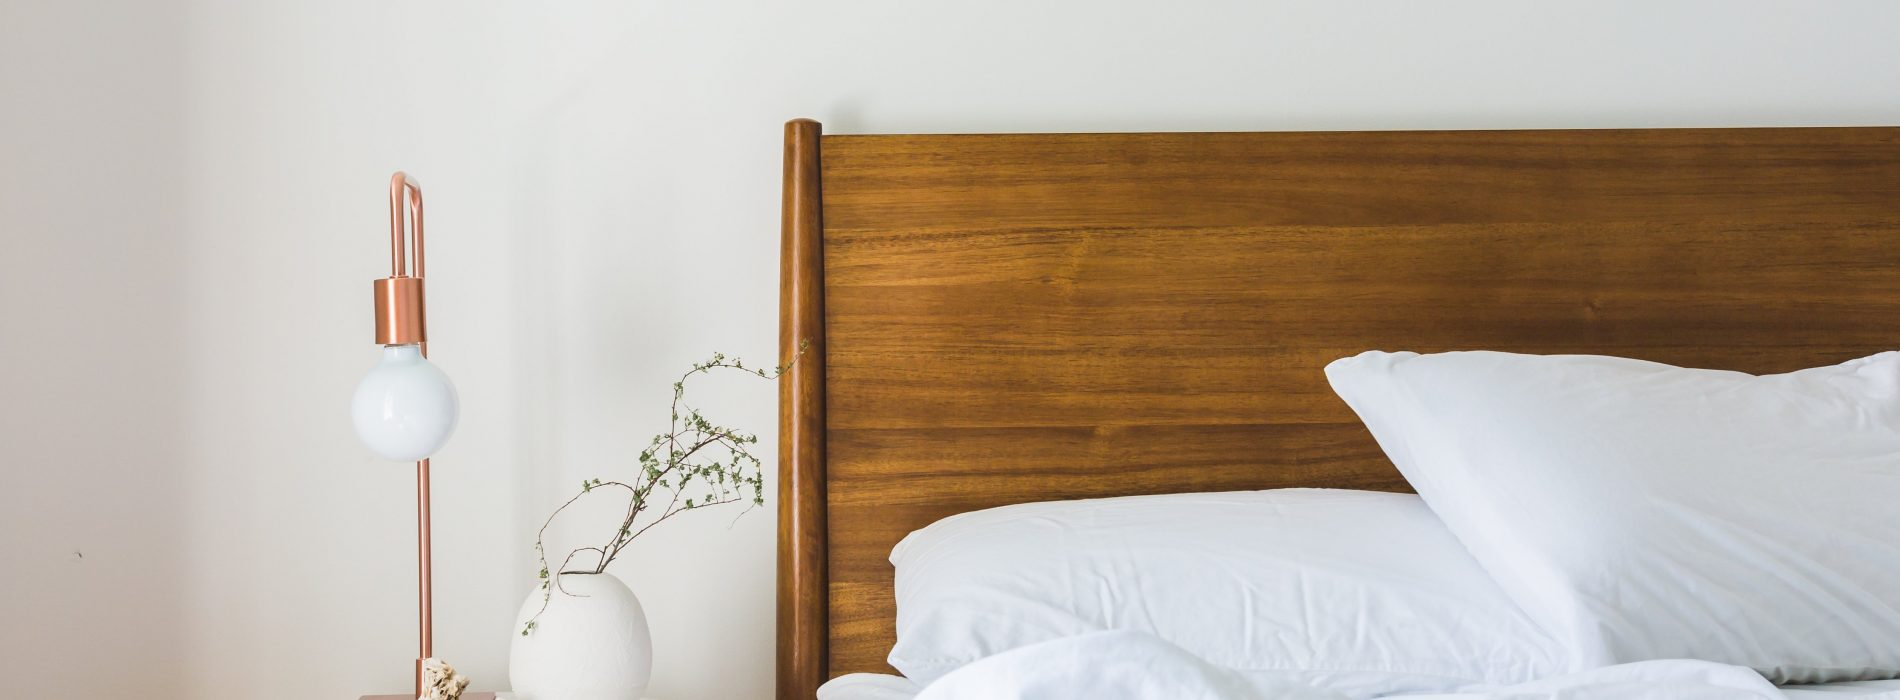 5 simple feng shui tips for a quick bedroom makeover after for Simple feng shui tips